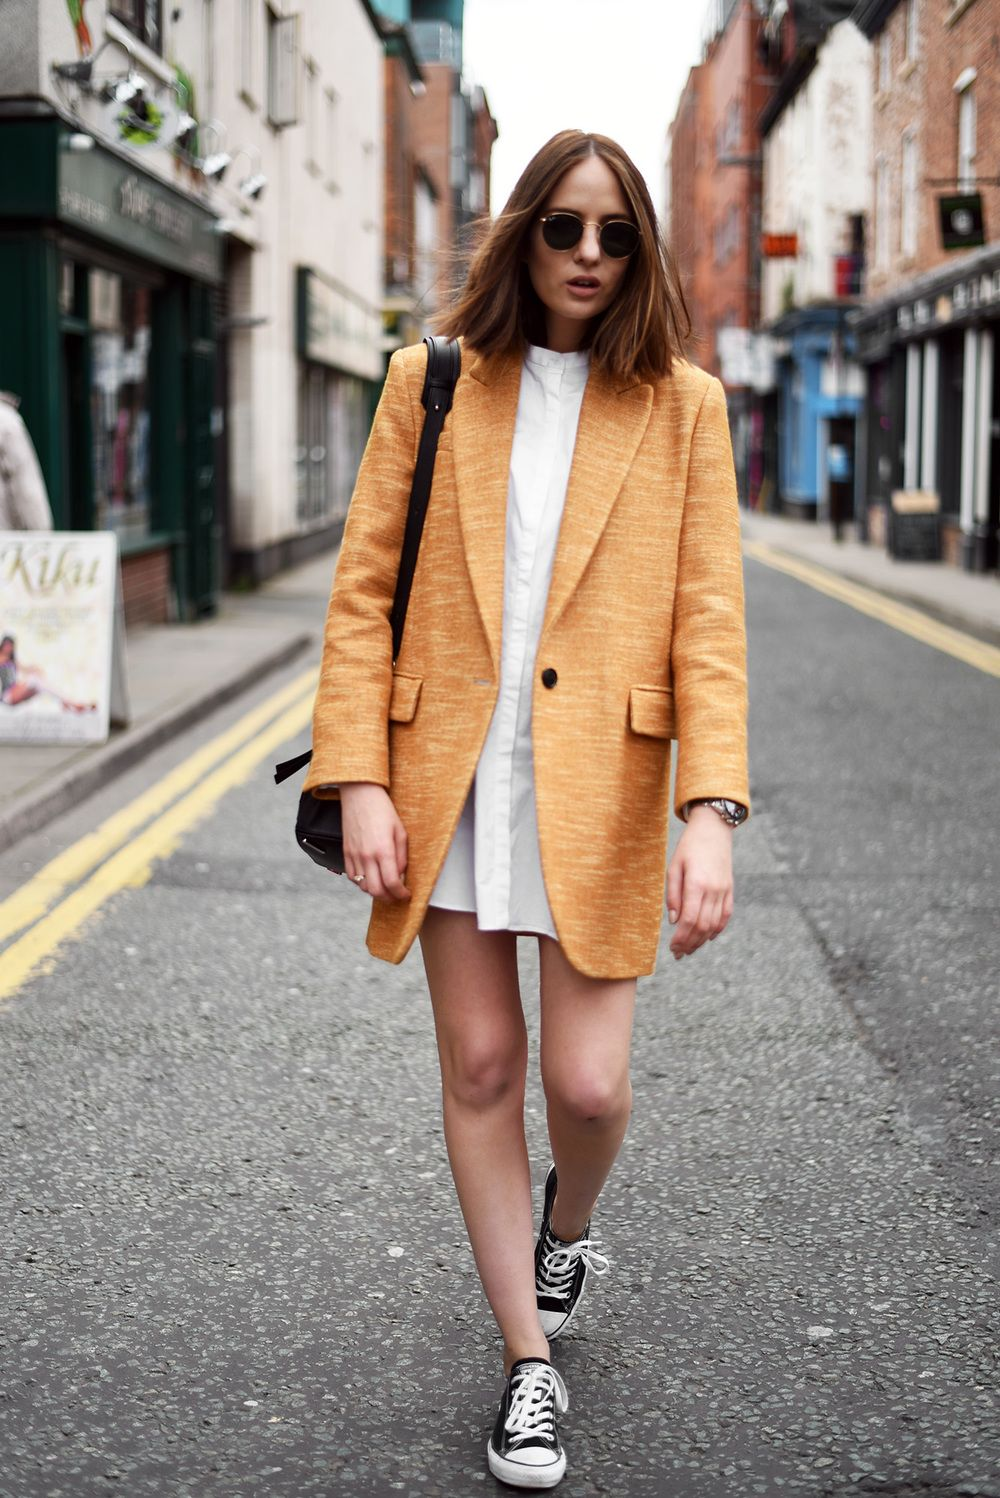 8 Bloggers Prove You Can Wear Converse With Anything (The